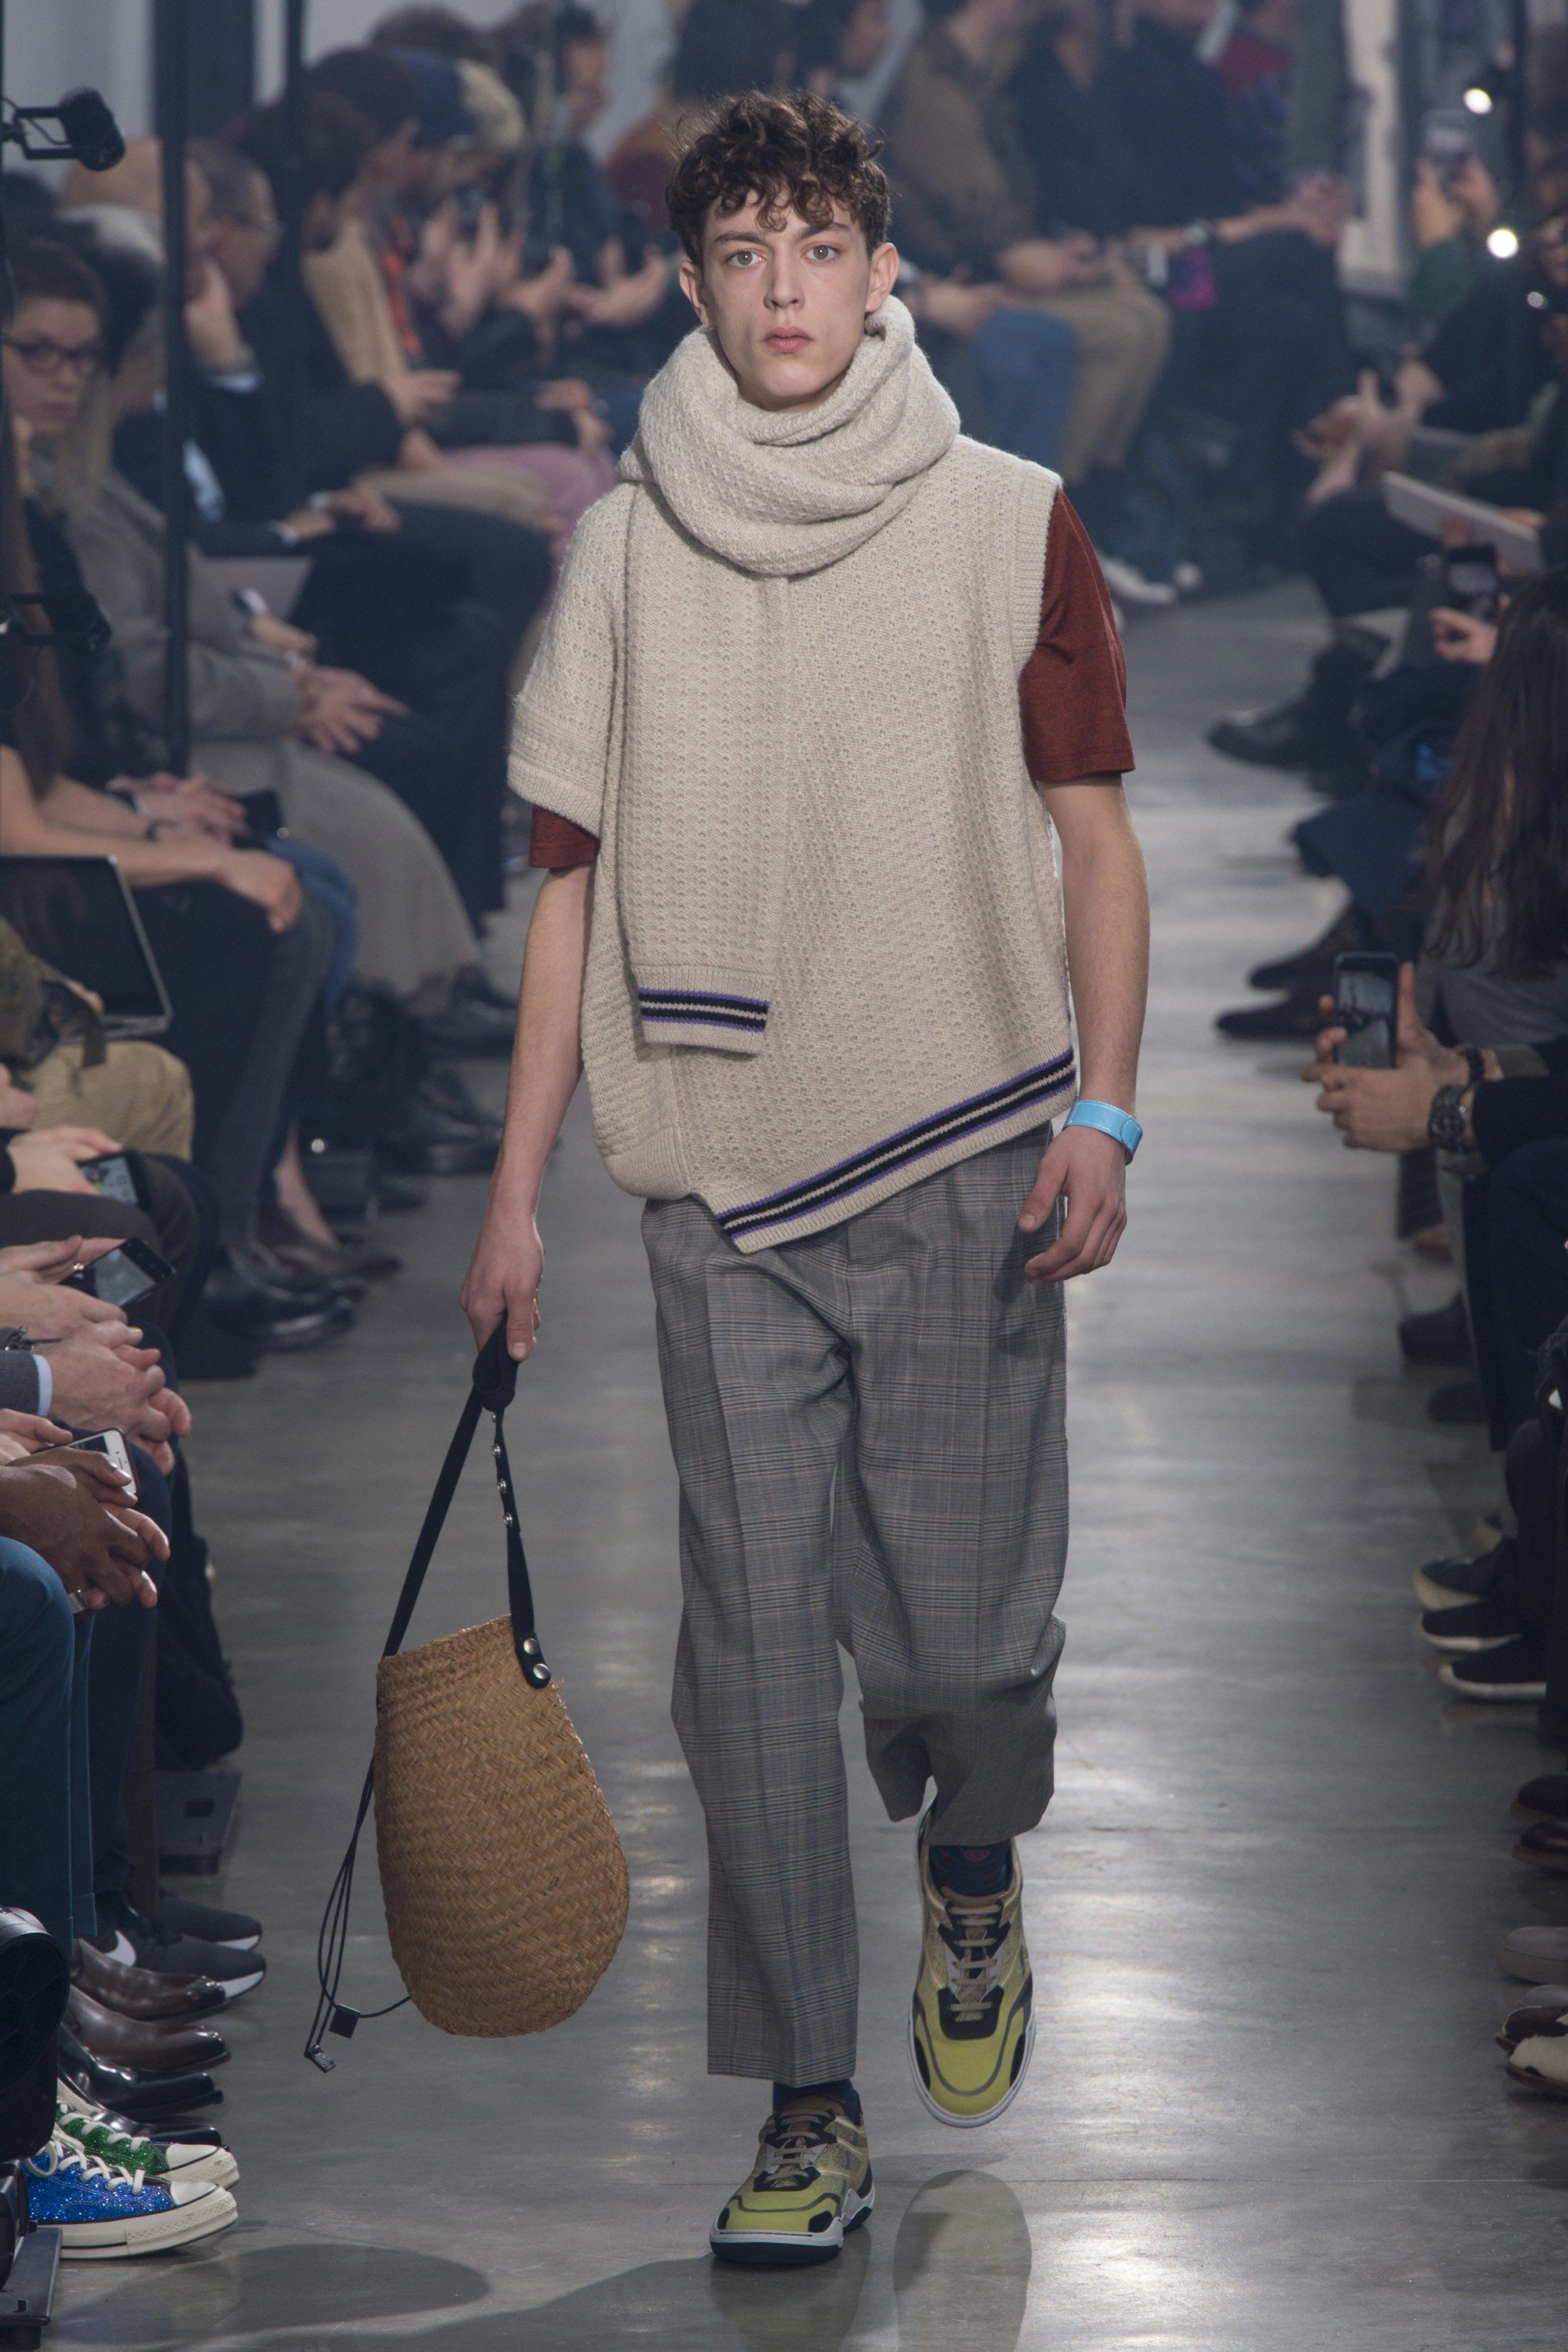 Lanvin fall menswear fashion show in rtw knits fall